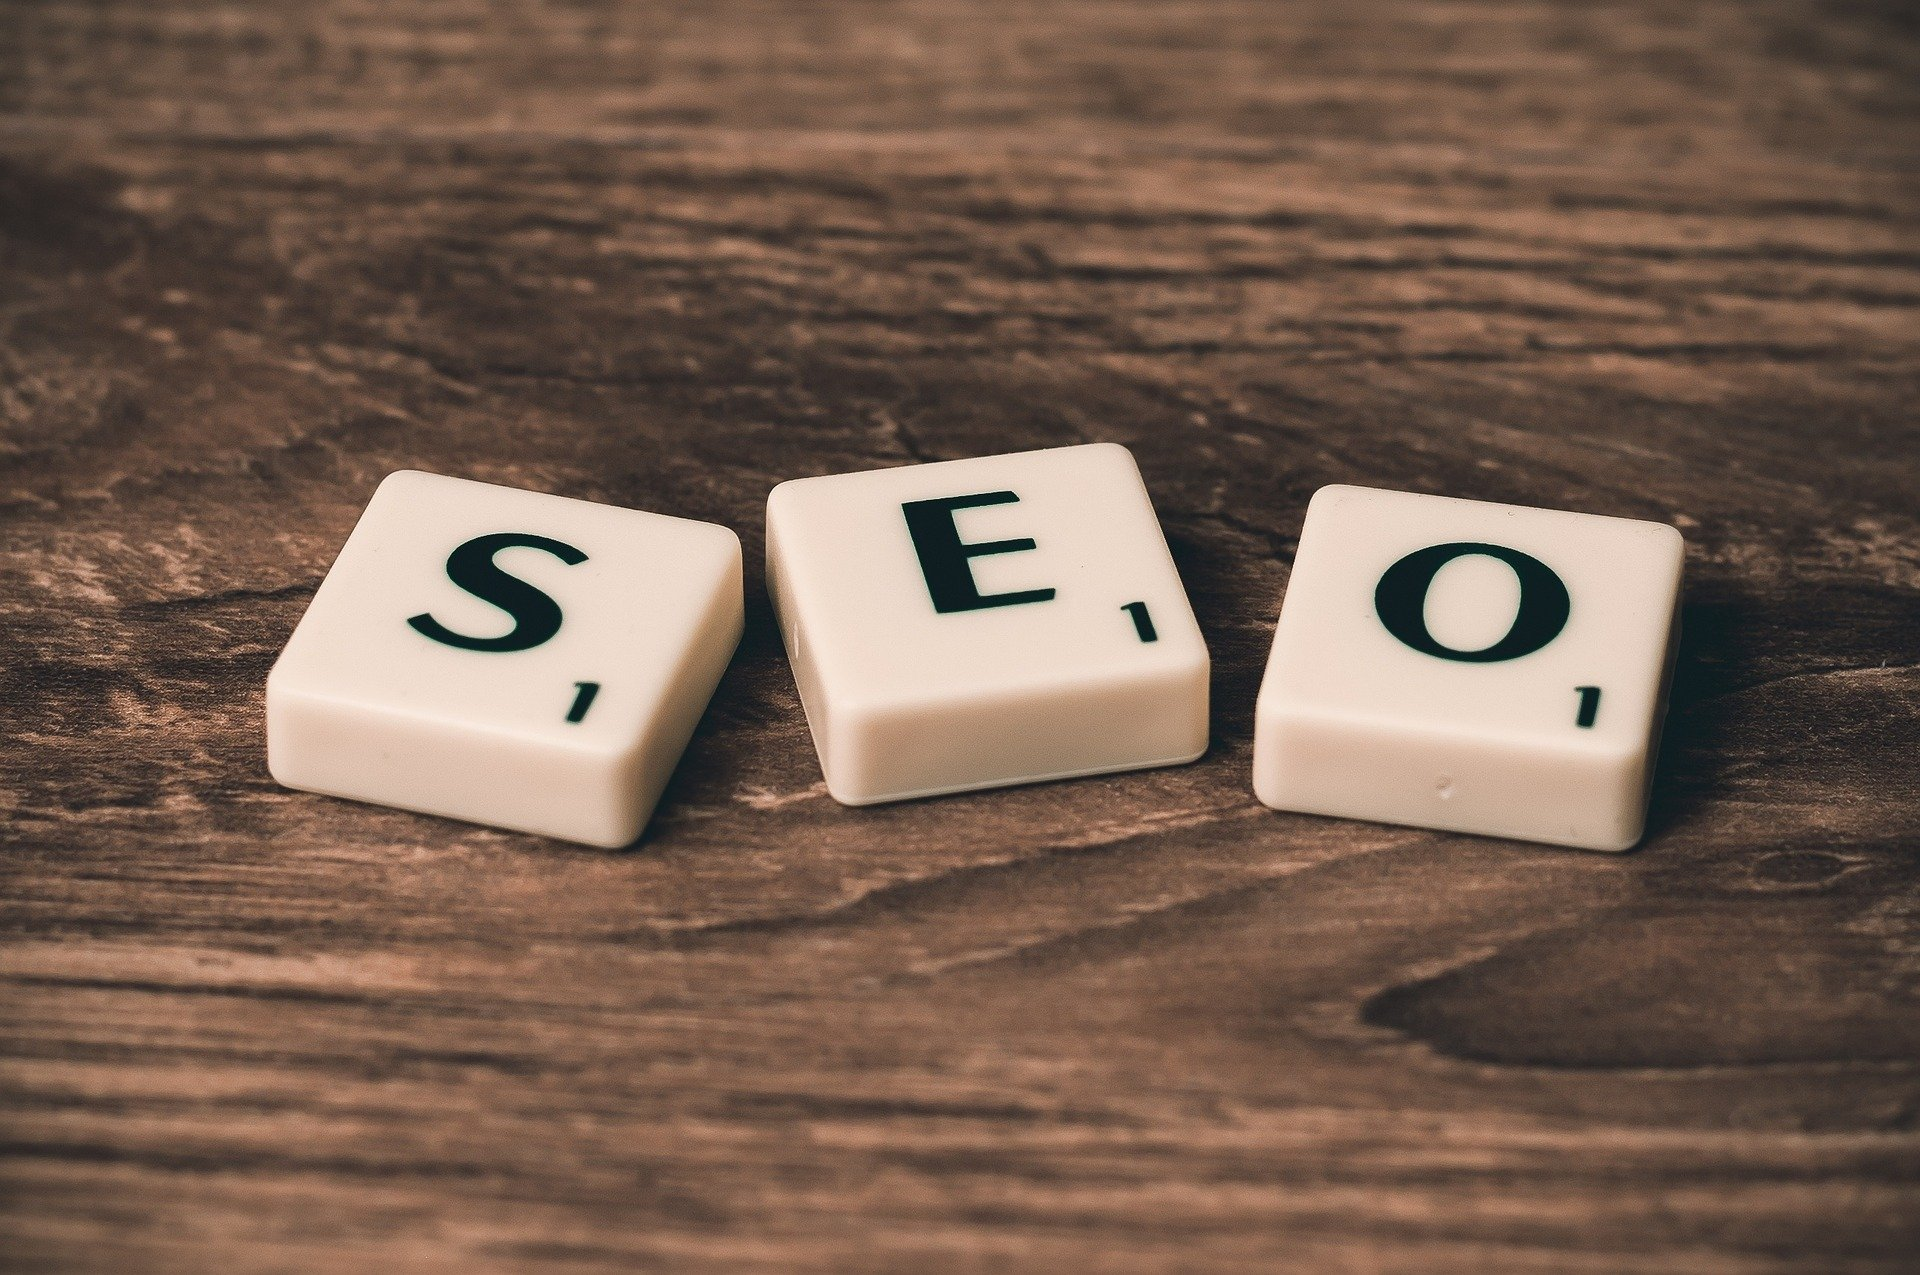 SEO 2021: How Much Will Online Search Change in 2021?